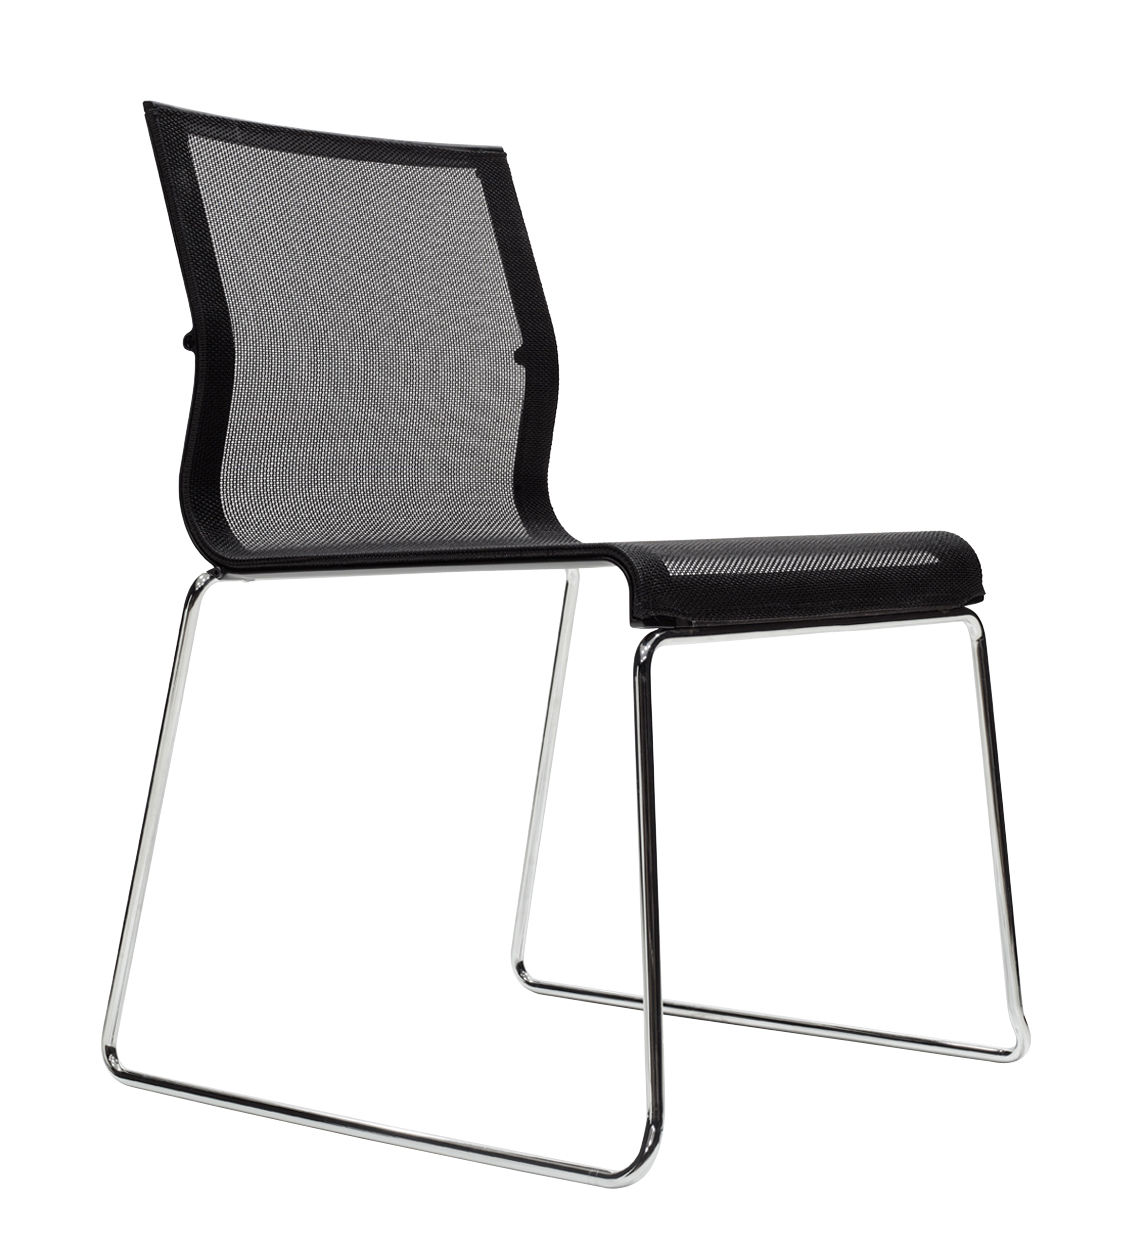 Prod Fauteuil Nemo Version Fixe Coloris Mat Driade Ref9854280 further Prod Chaise Empilable Stick Chair Assise Tissu Icf Refs  500 Vcr X01 as well Size Guide additionally Chaise Beetle Velours Sable Pieds Noirs Gubi together with Prod Rocking Chair  back Polycarbonate Pieds Bois Kartell Ref5956 06. on sacs chair